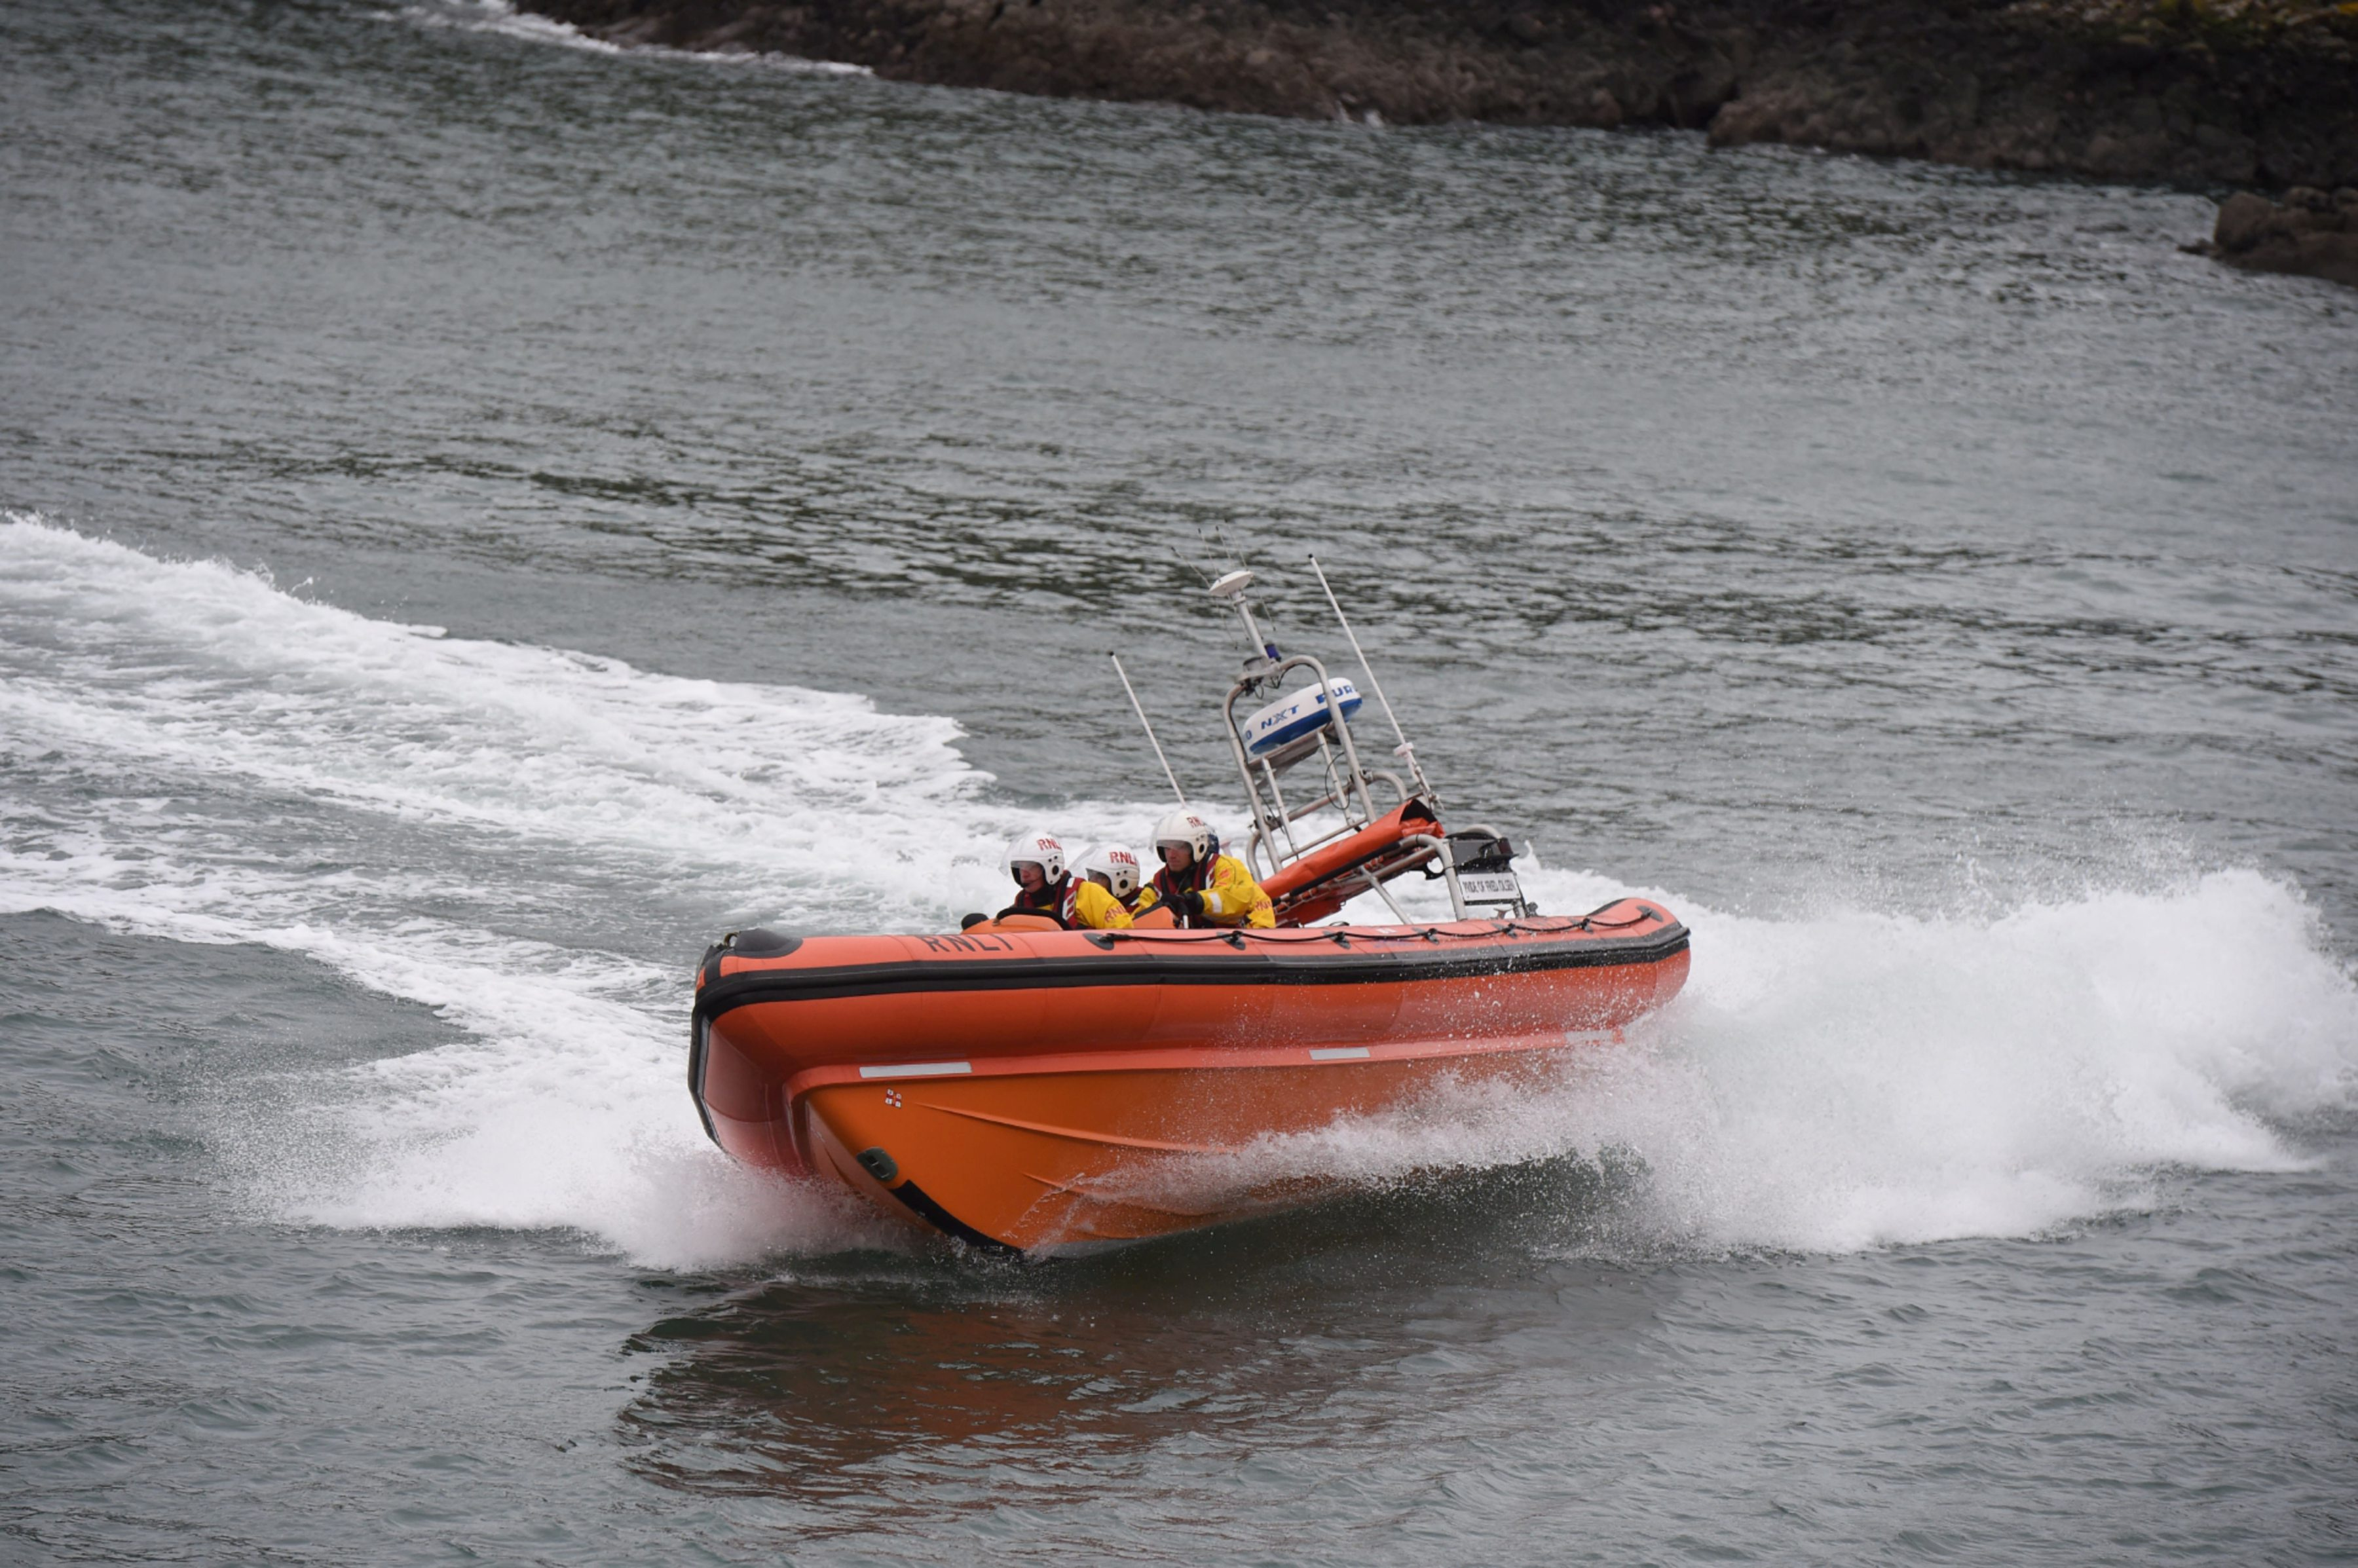 A RNLI lifeboat crew were tasked with the rescue.